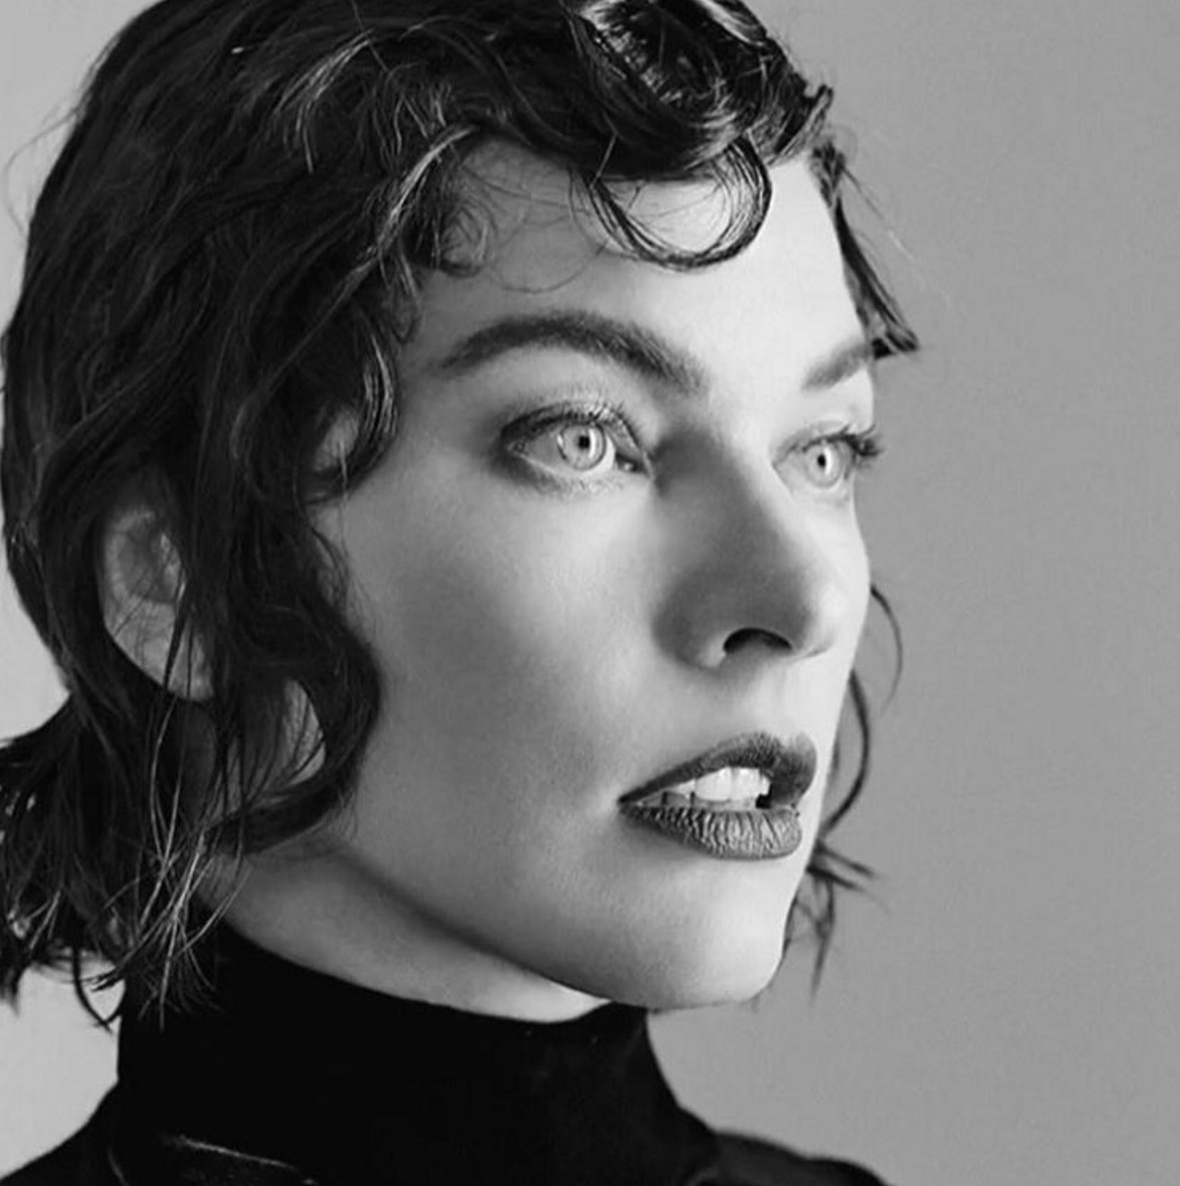 Milla Jovovich nudes (34 photos), Tits, Hot, Instagram, cameltoe 2019